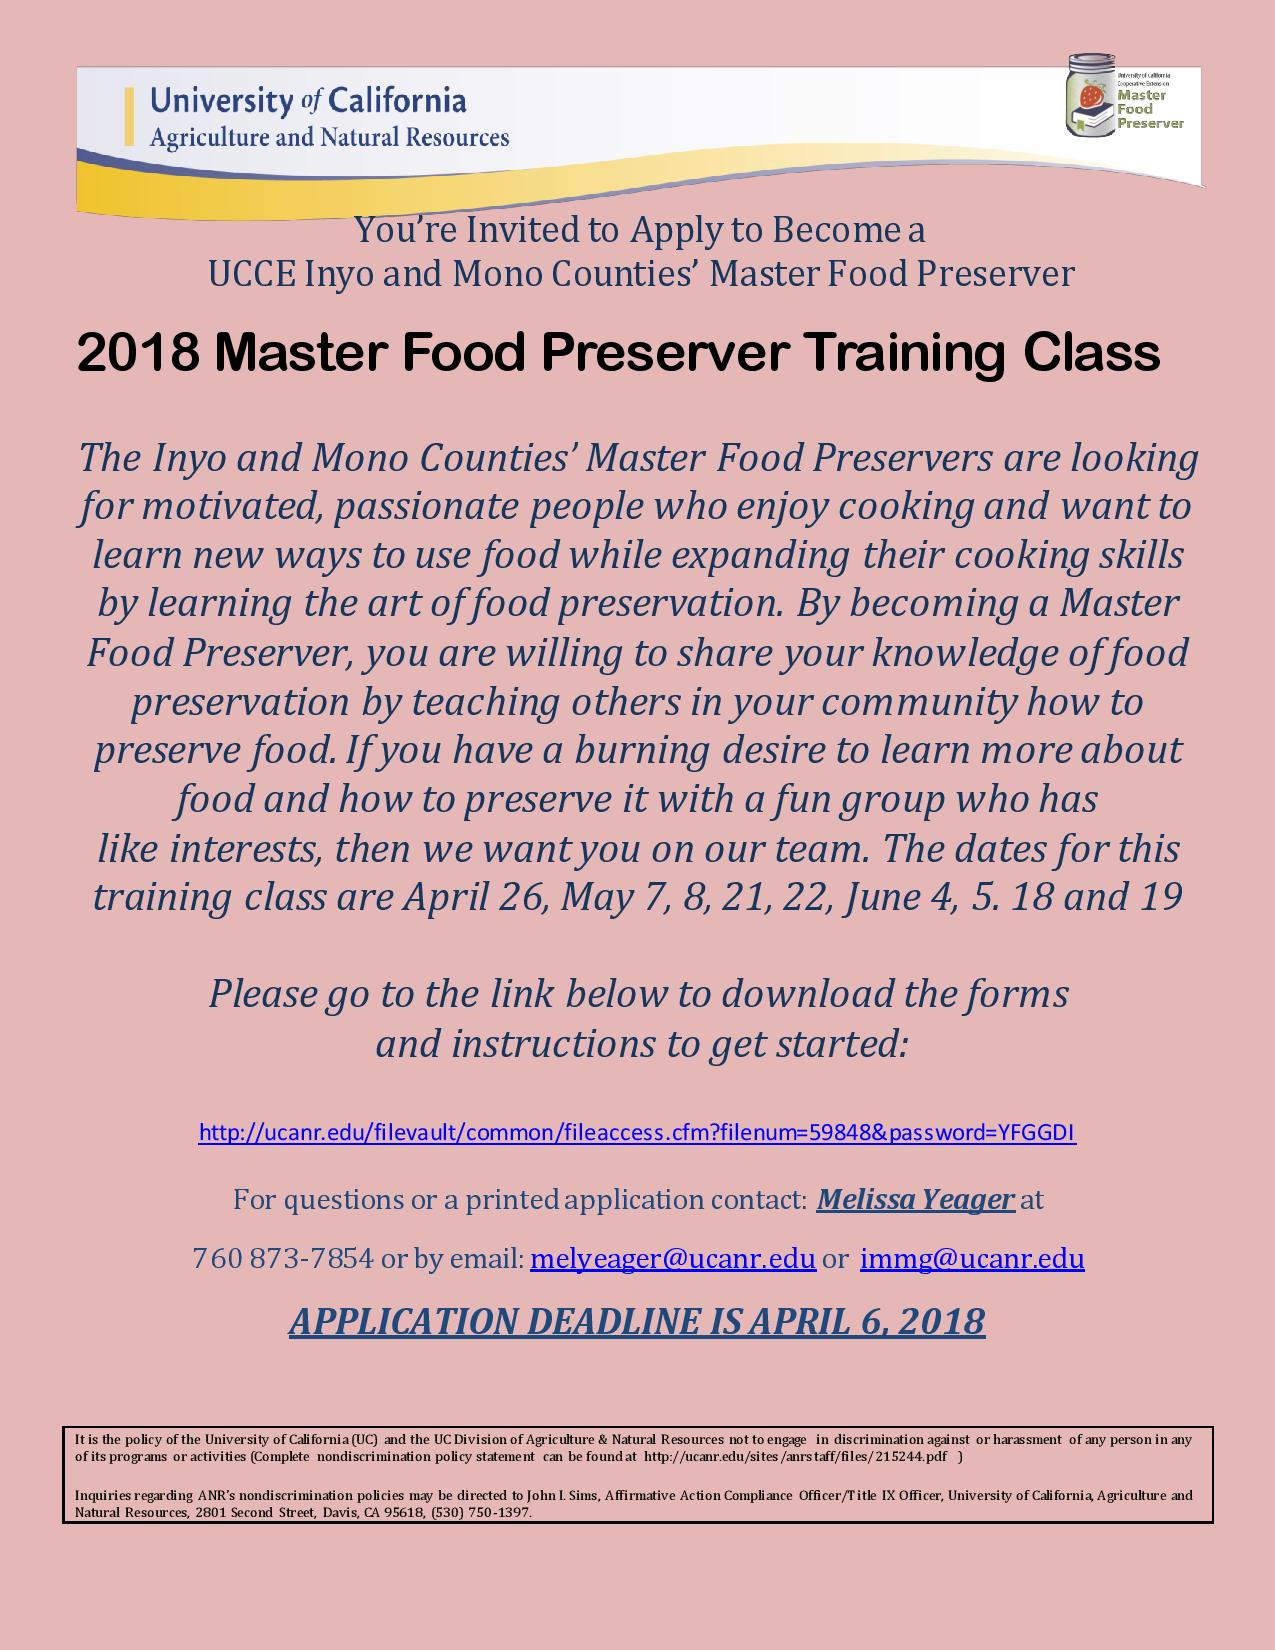 2018 new Master Food Preserver Training Class flyer-page-001.jpg